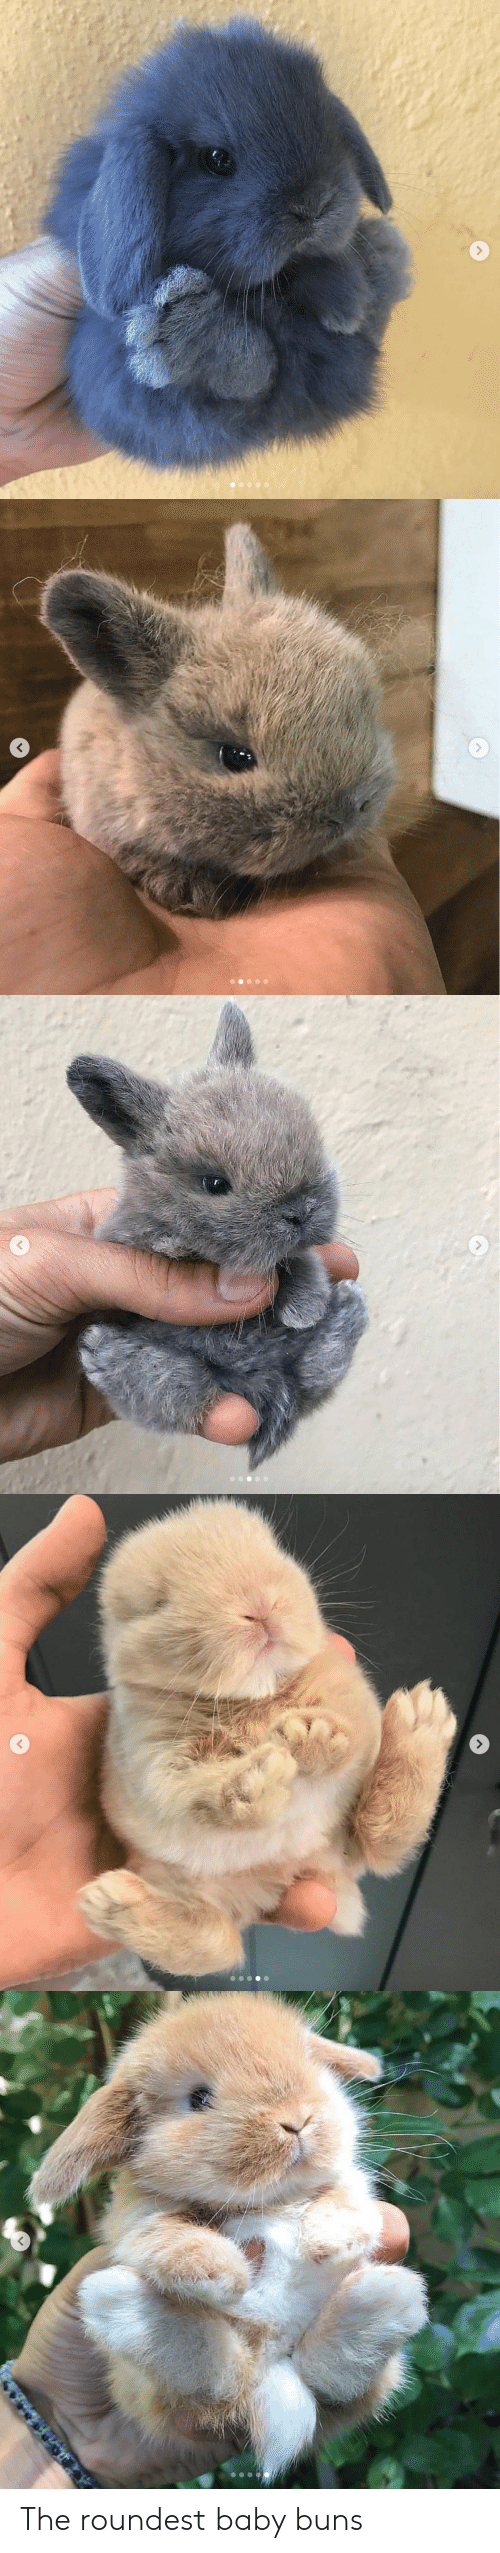 buns: The roundest baby buns